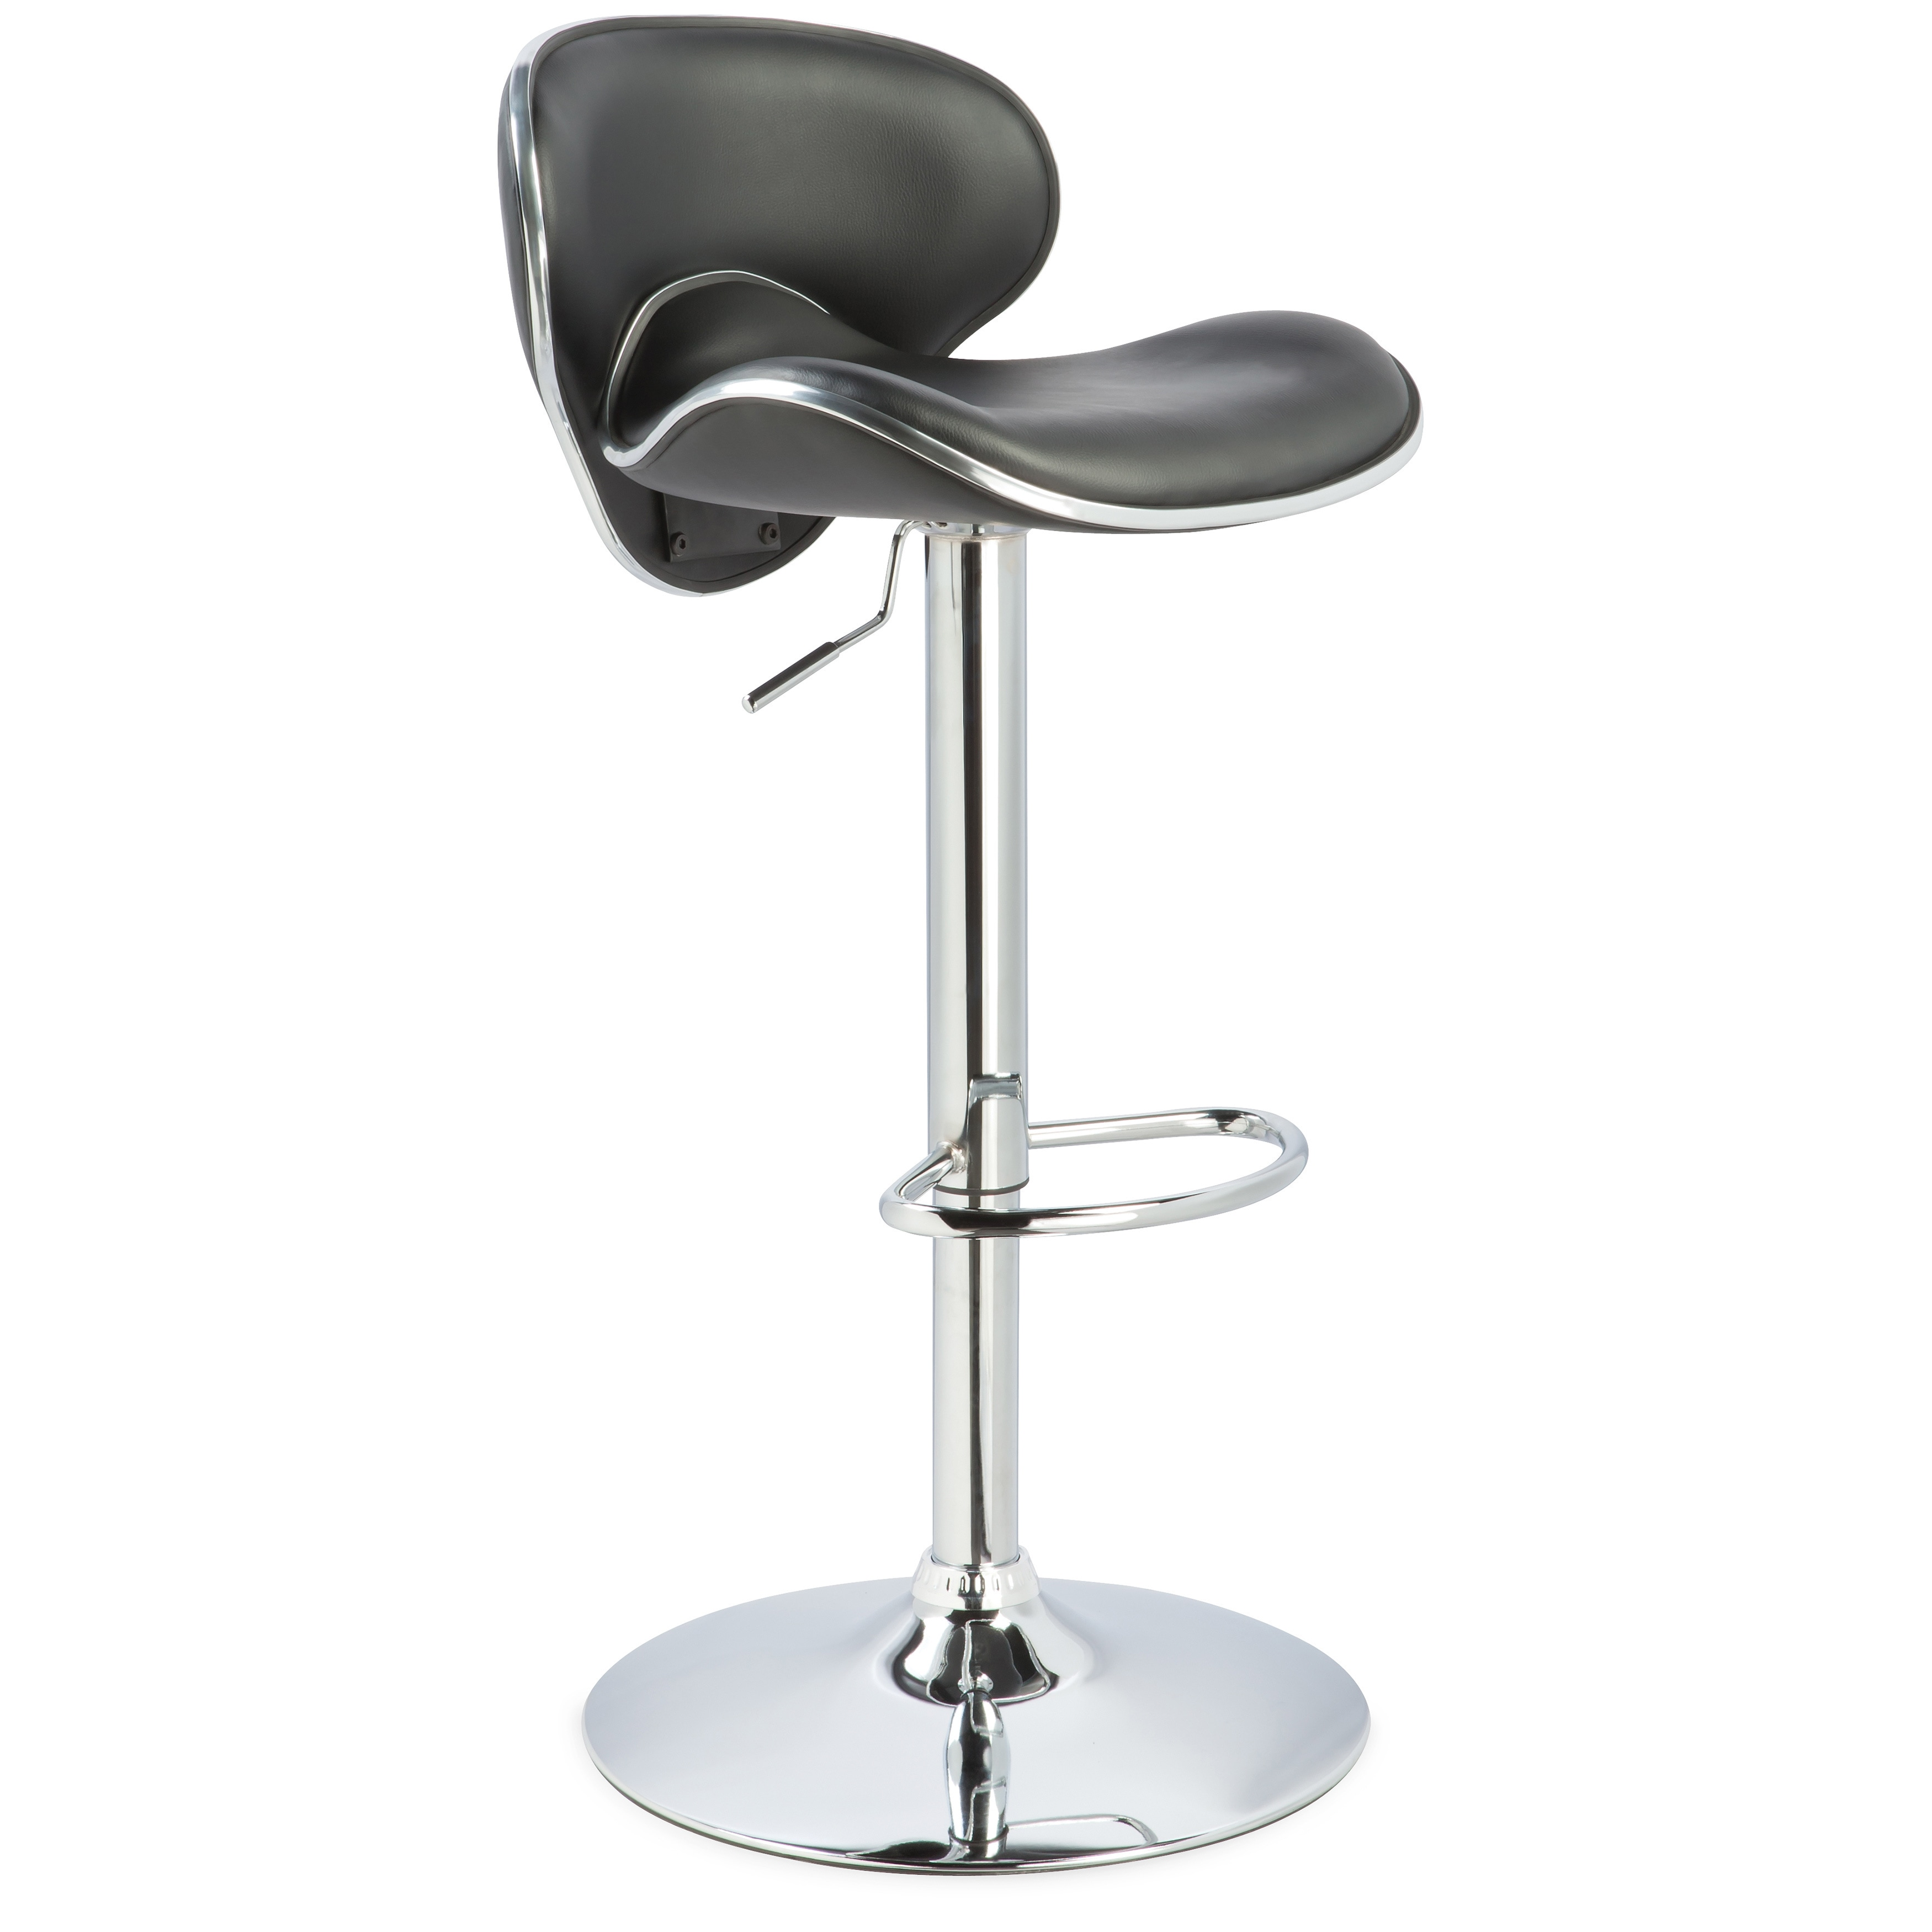 Remarkable Art Van Gas Lift Bar Stool Caraccident5 Cool Chair Designs And Ideas Caraccident5Info